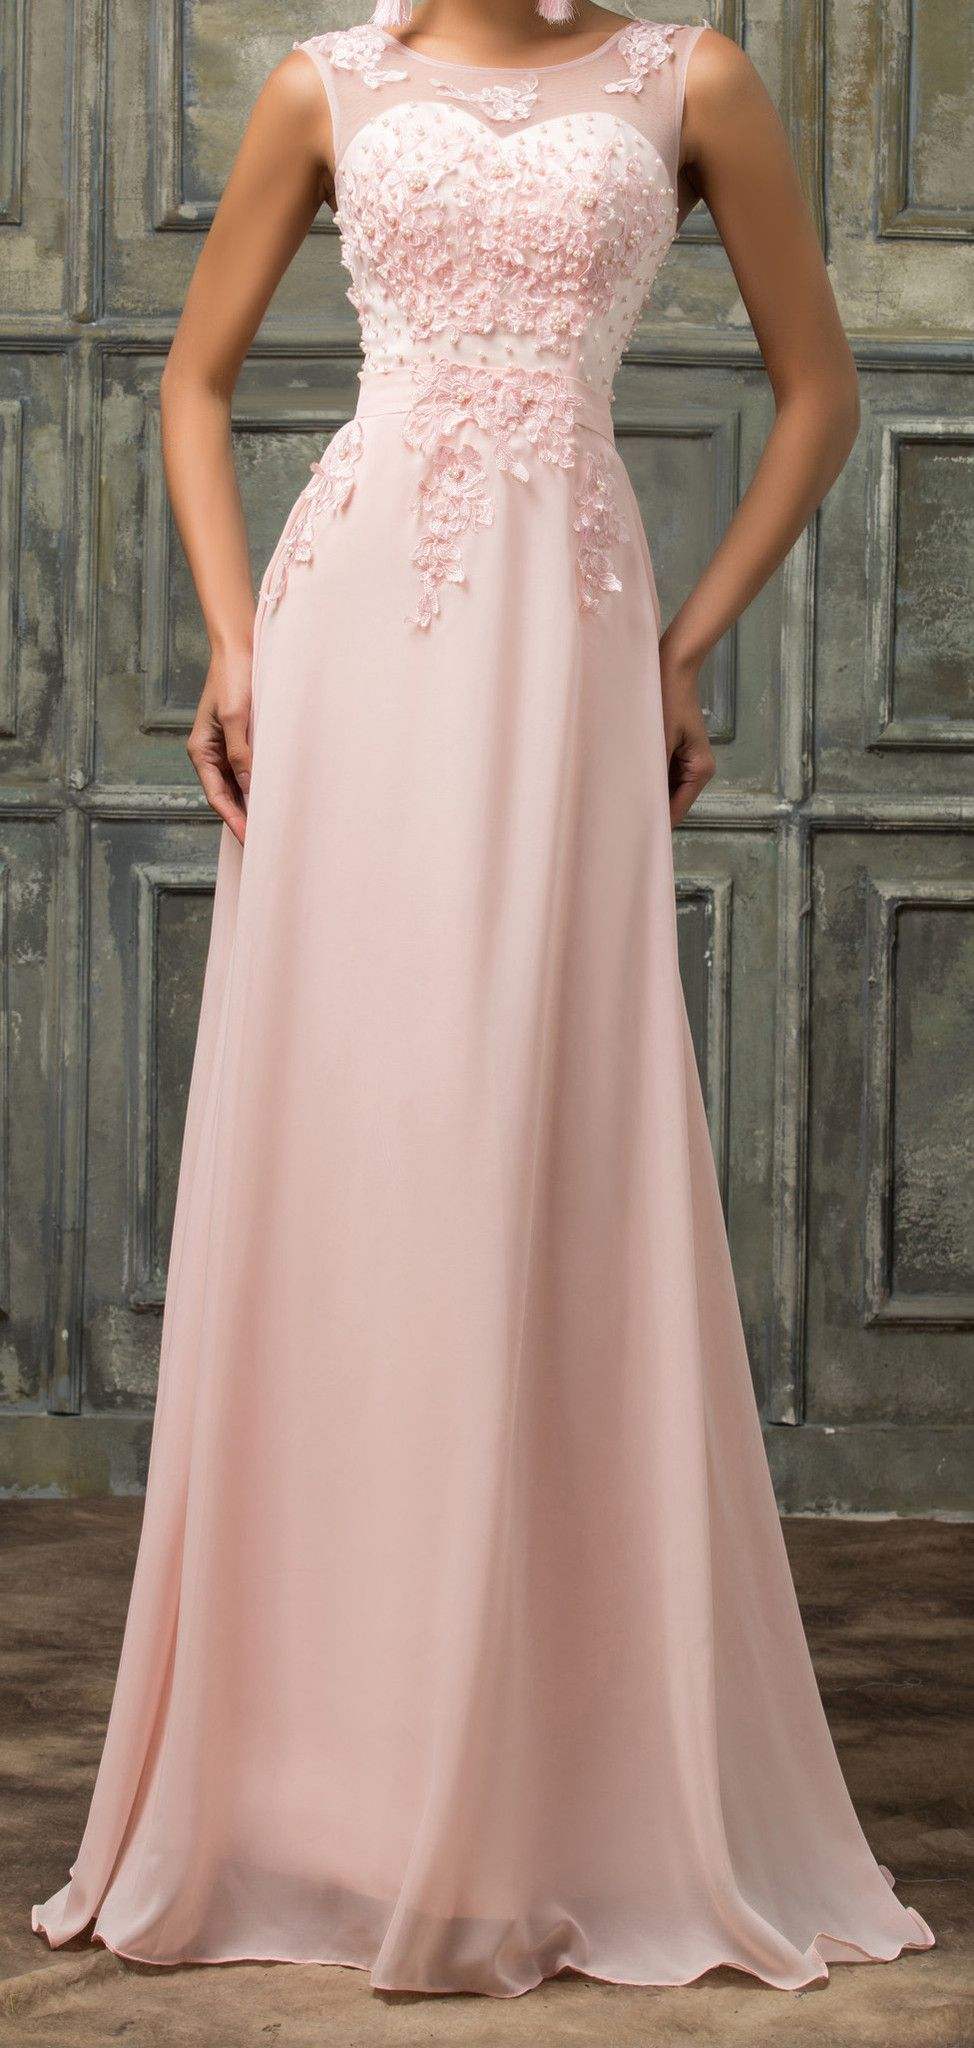 Women\'s Beaded Pink Chiffon Bridesmaid .Red Carpet .Pageant Dress ...